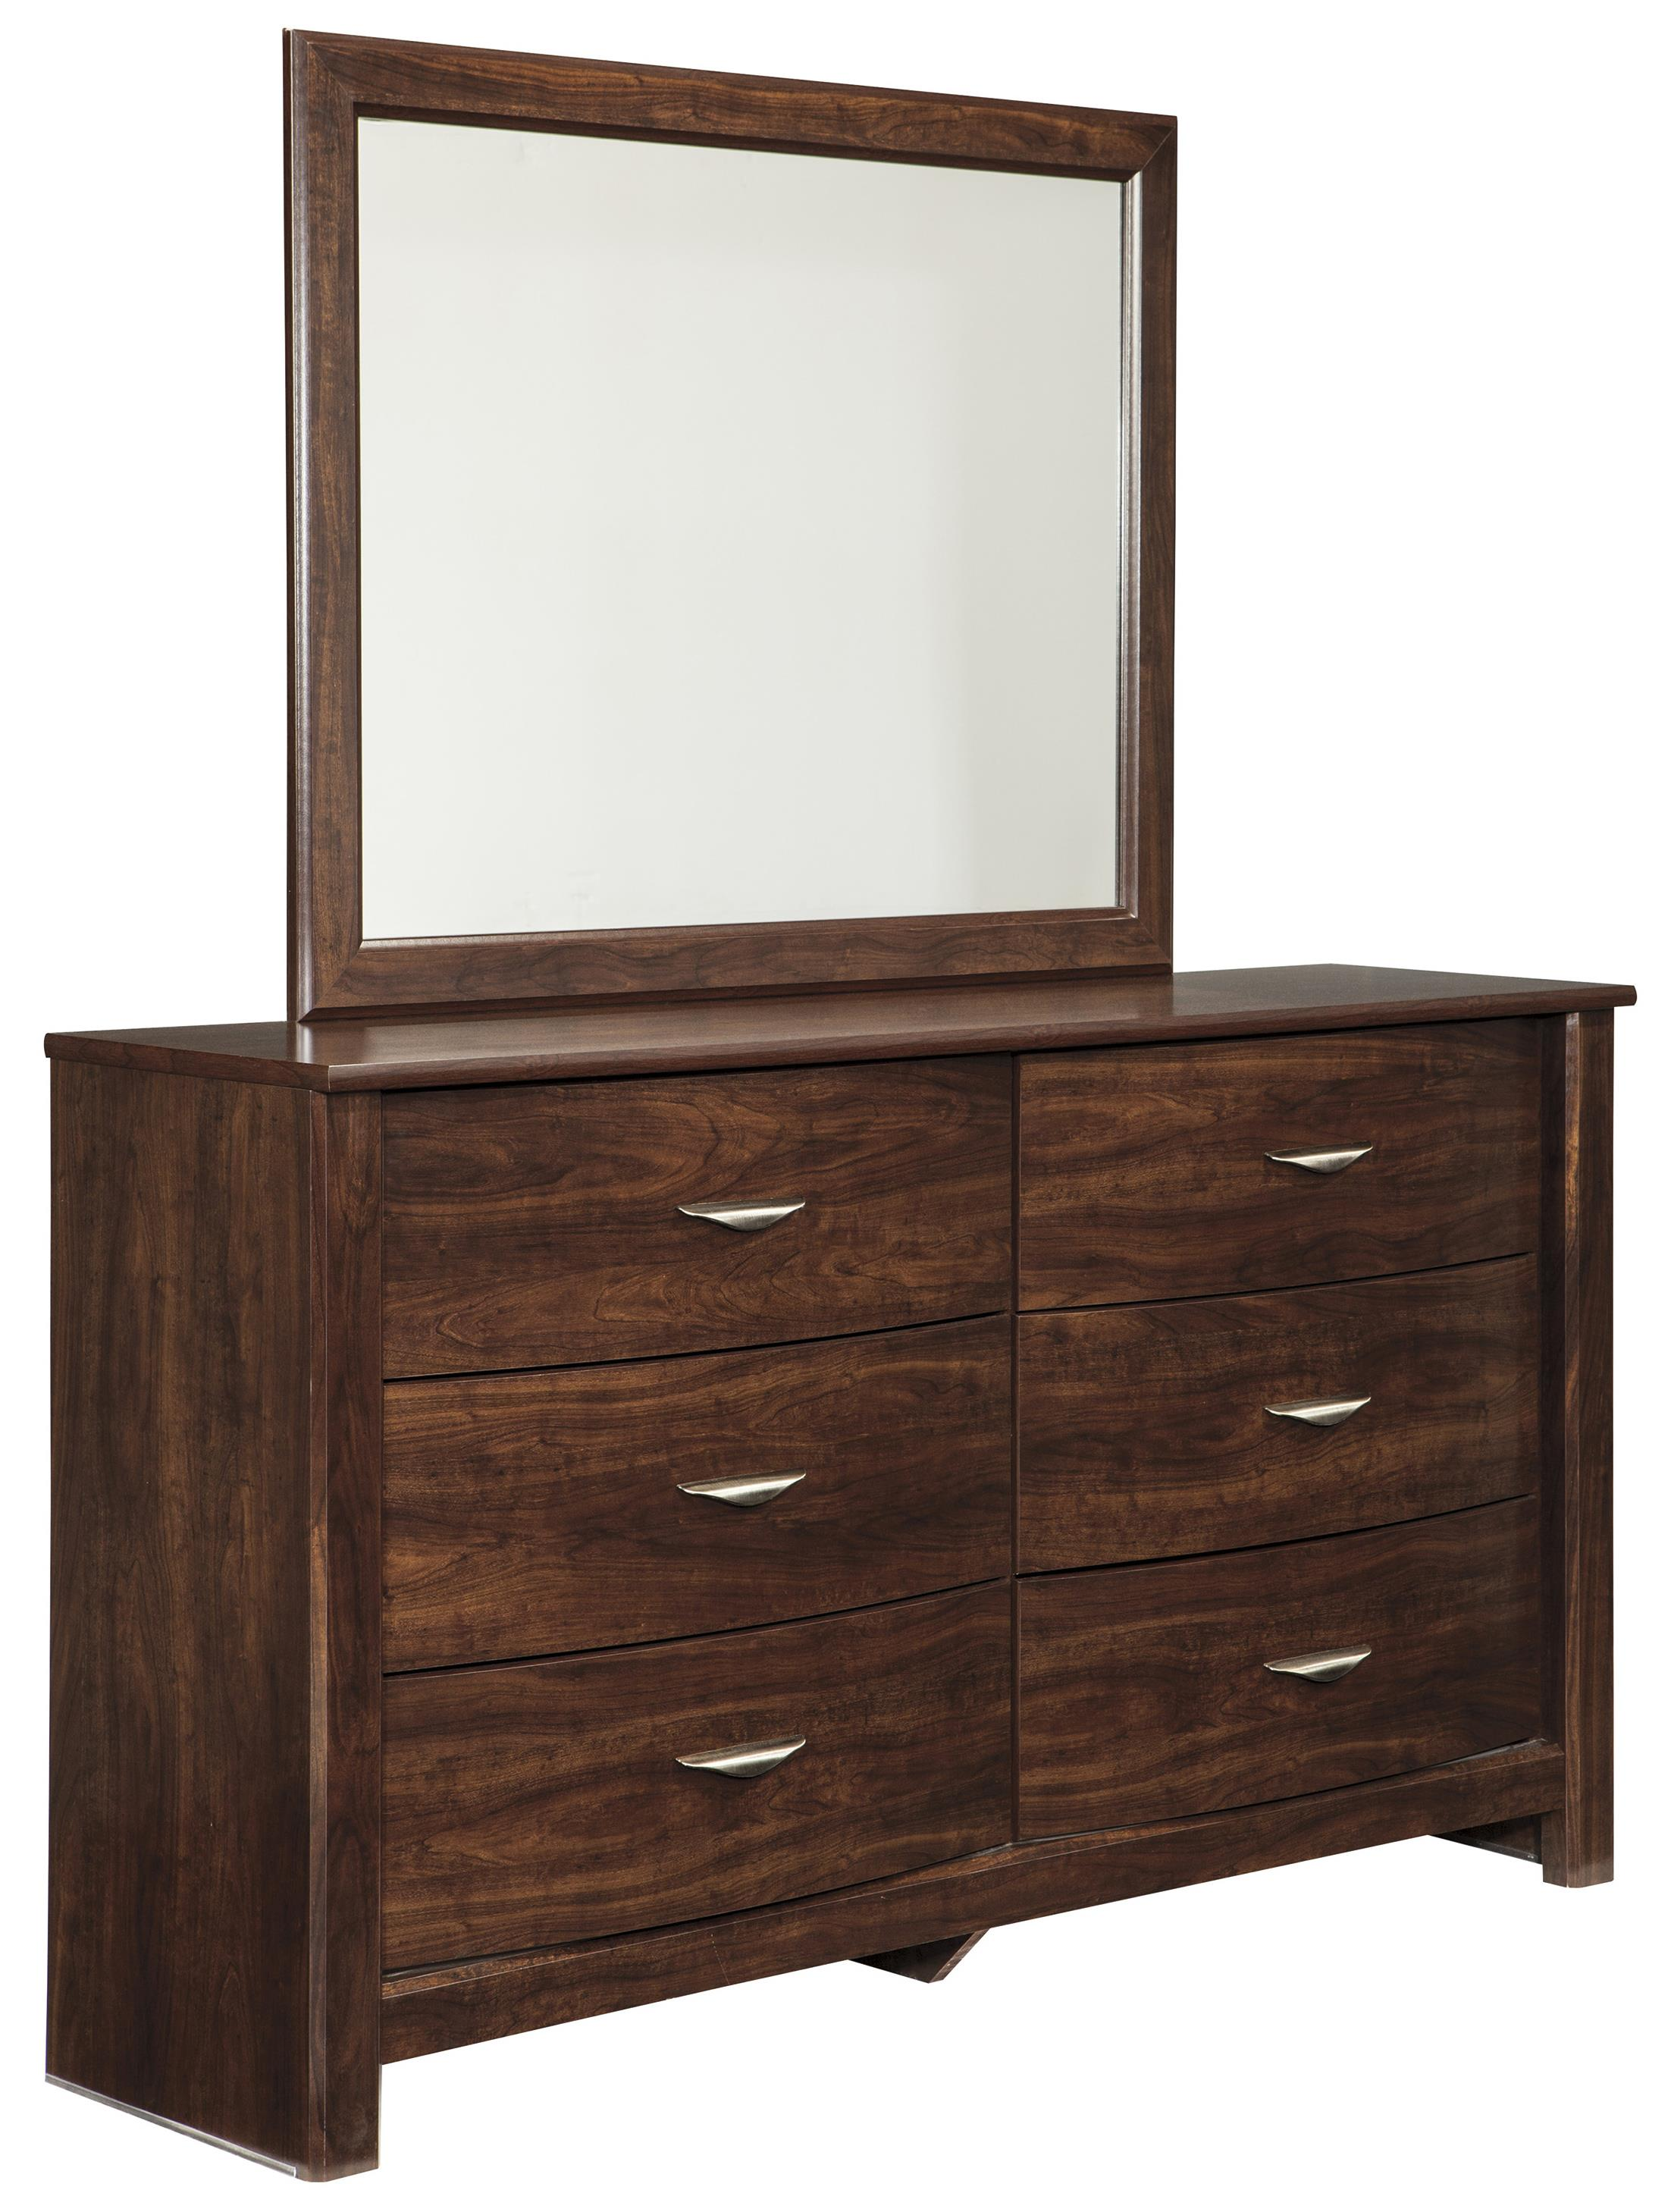 Signature Design by Ashley Corraya Dresser & Bedroom Mirror - Item Number: B428-31+36